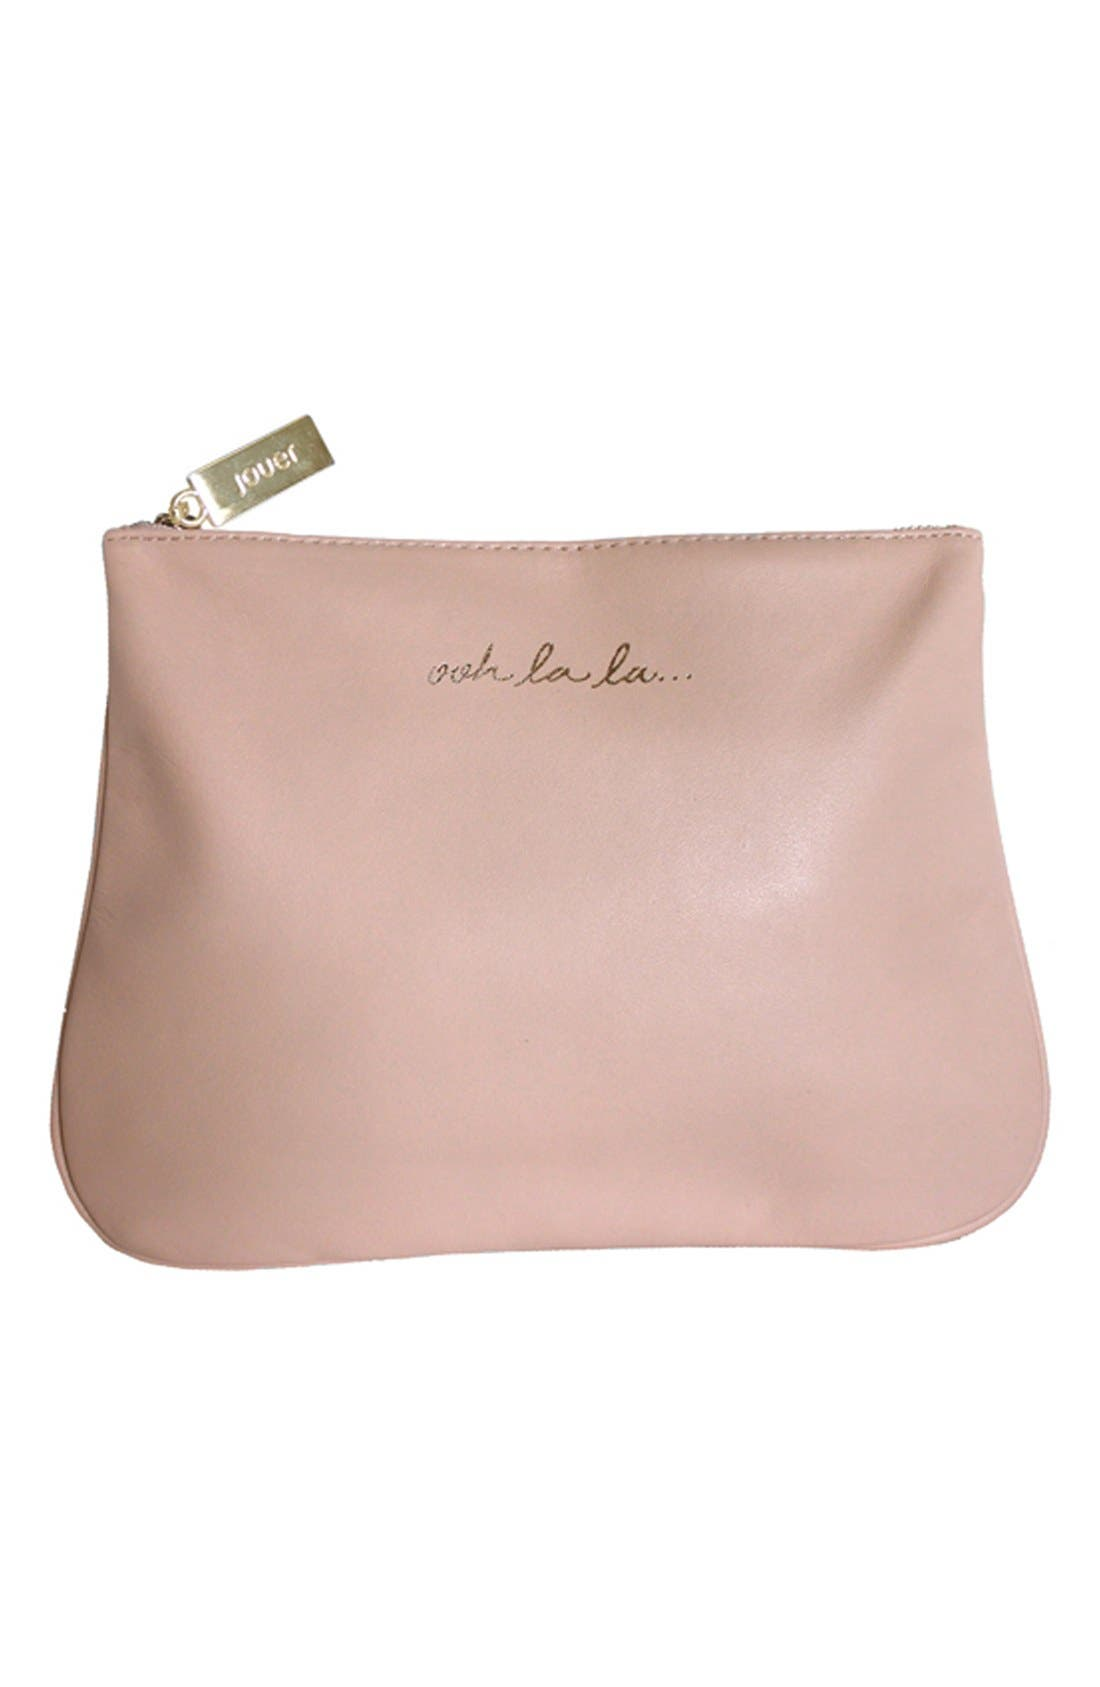 Jouer 'IT' Cosmetics Bag